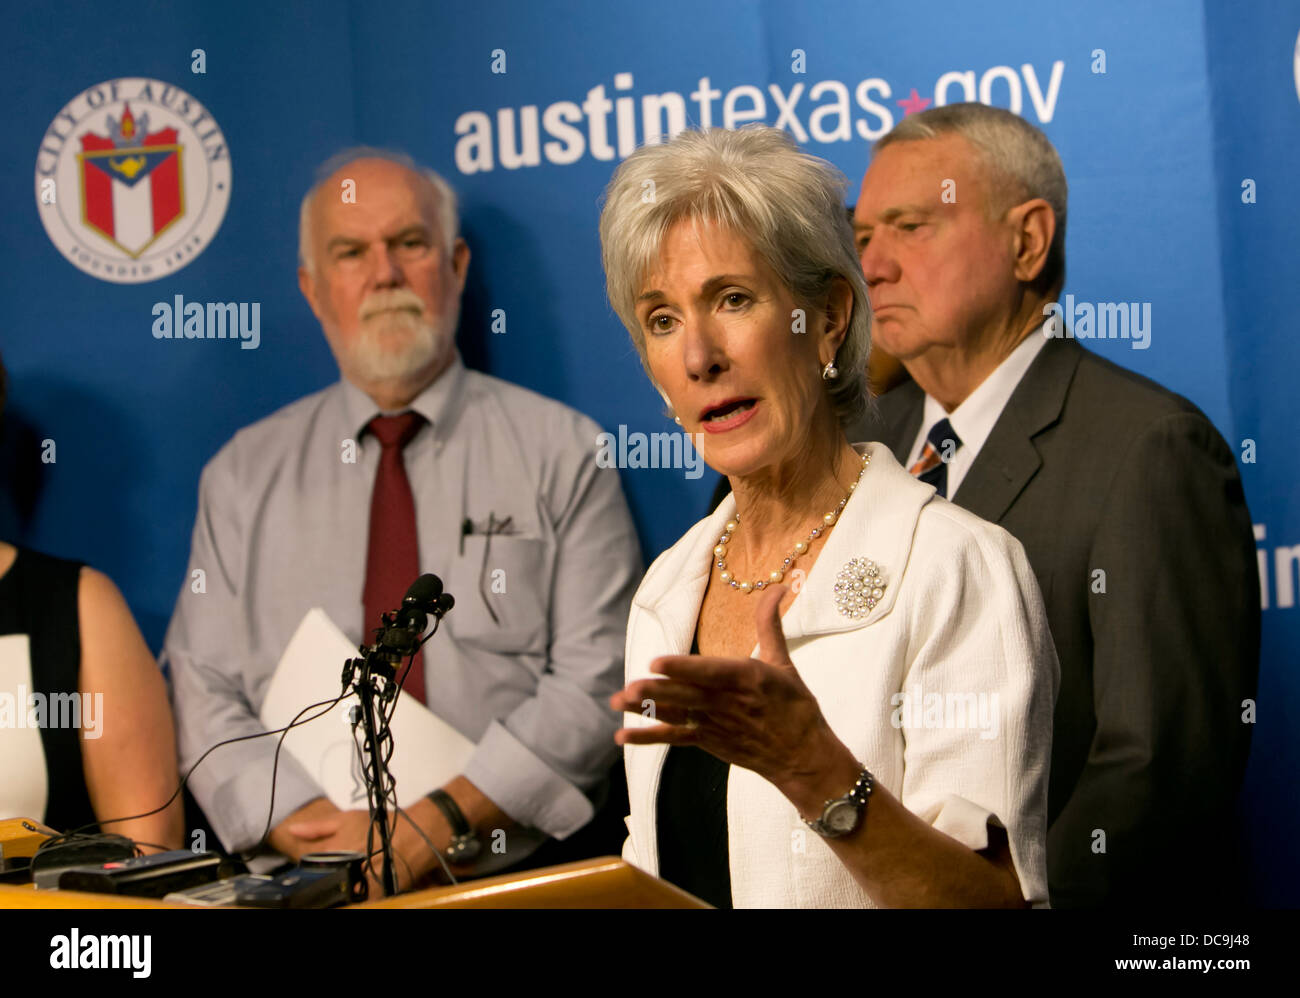 US Secretary of Health and Human Services, Kathleen Sebelius, met in Austin Texas to discuss the Affordable Care - Stock Image